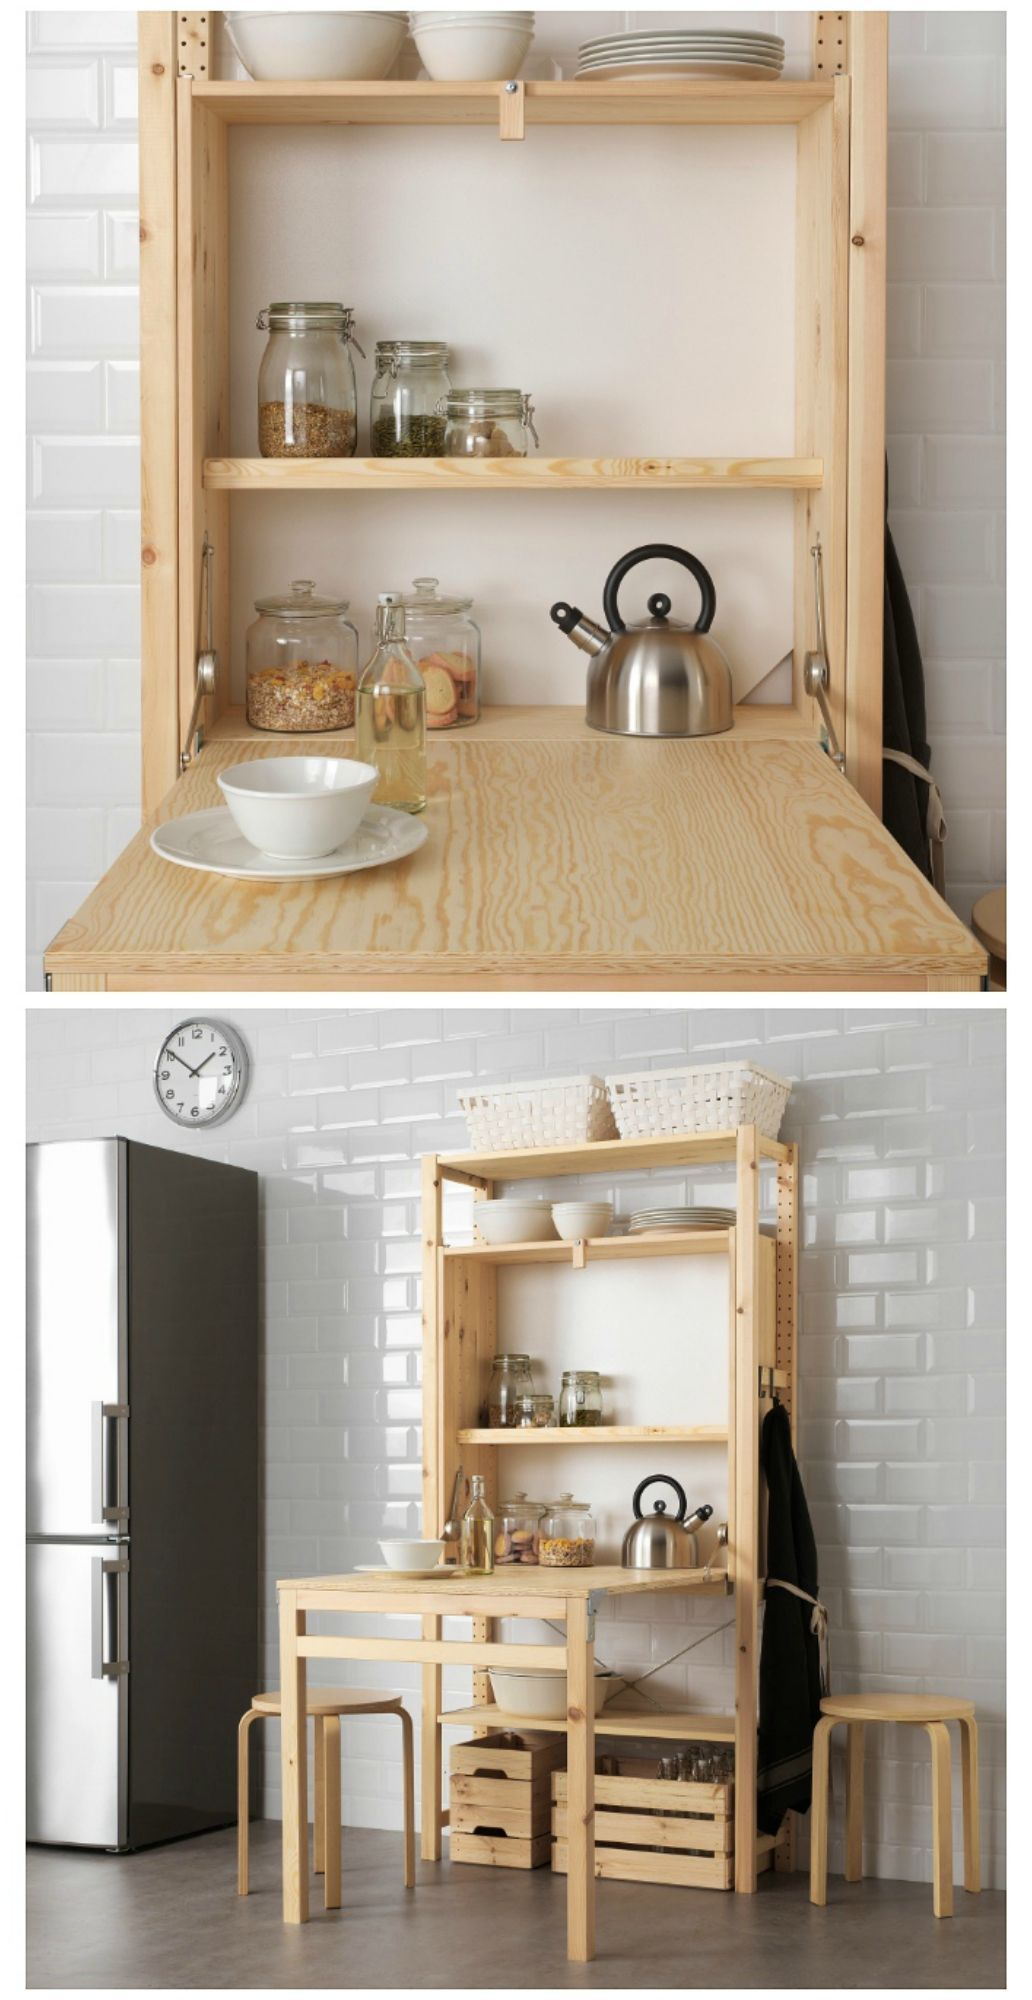 IKEA launches spacesaving shelving unit with foldable